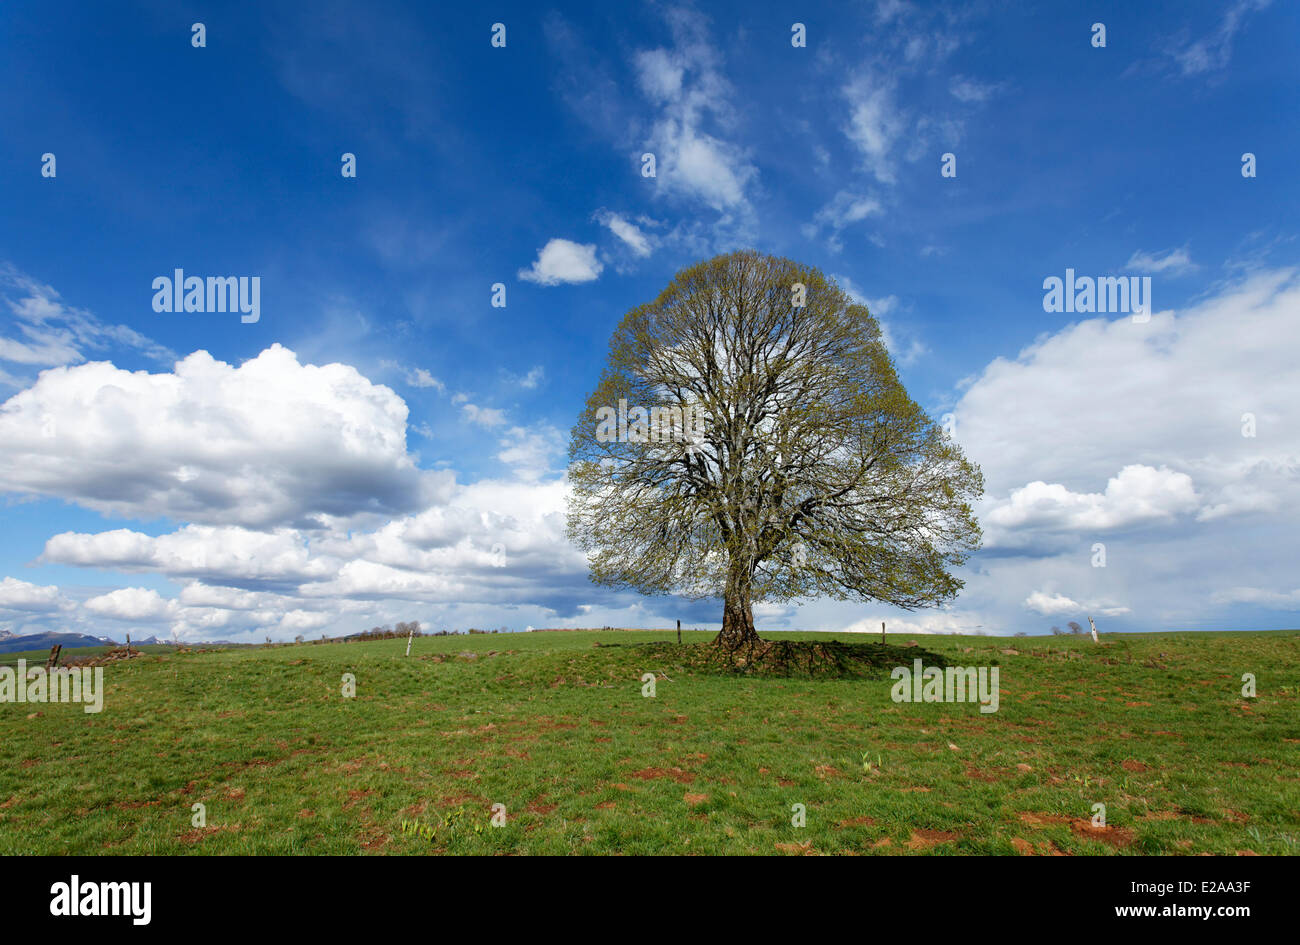 France, Cantal, isolate lime tree - Stock Image